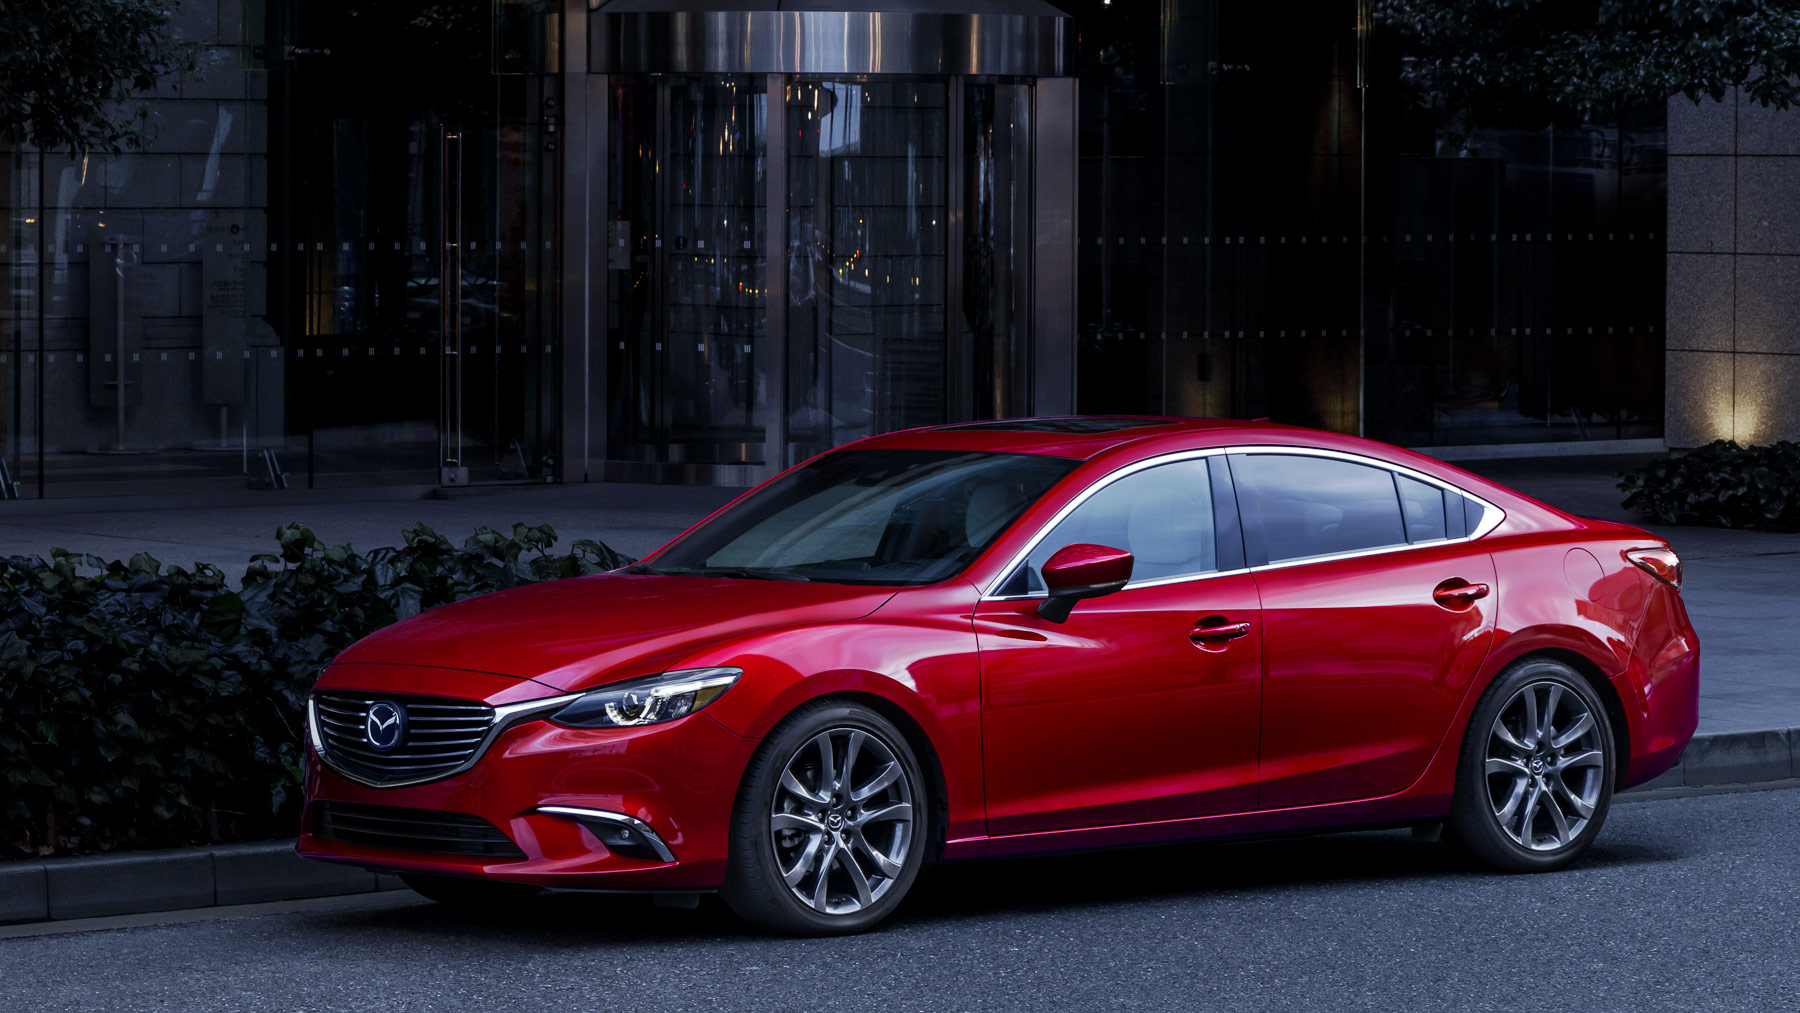 2017 Mazda6 Financing in Elk Grove, CA